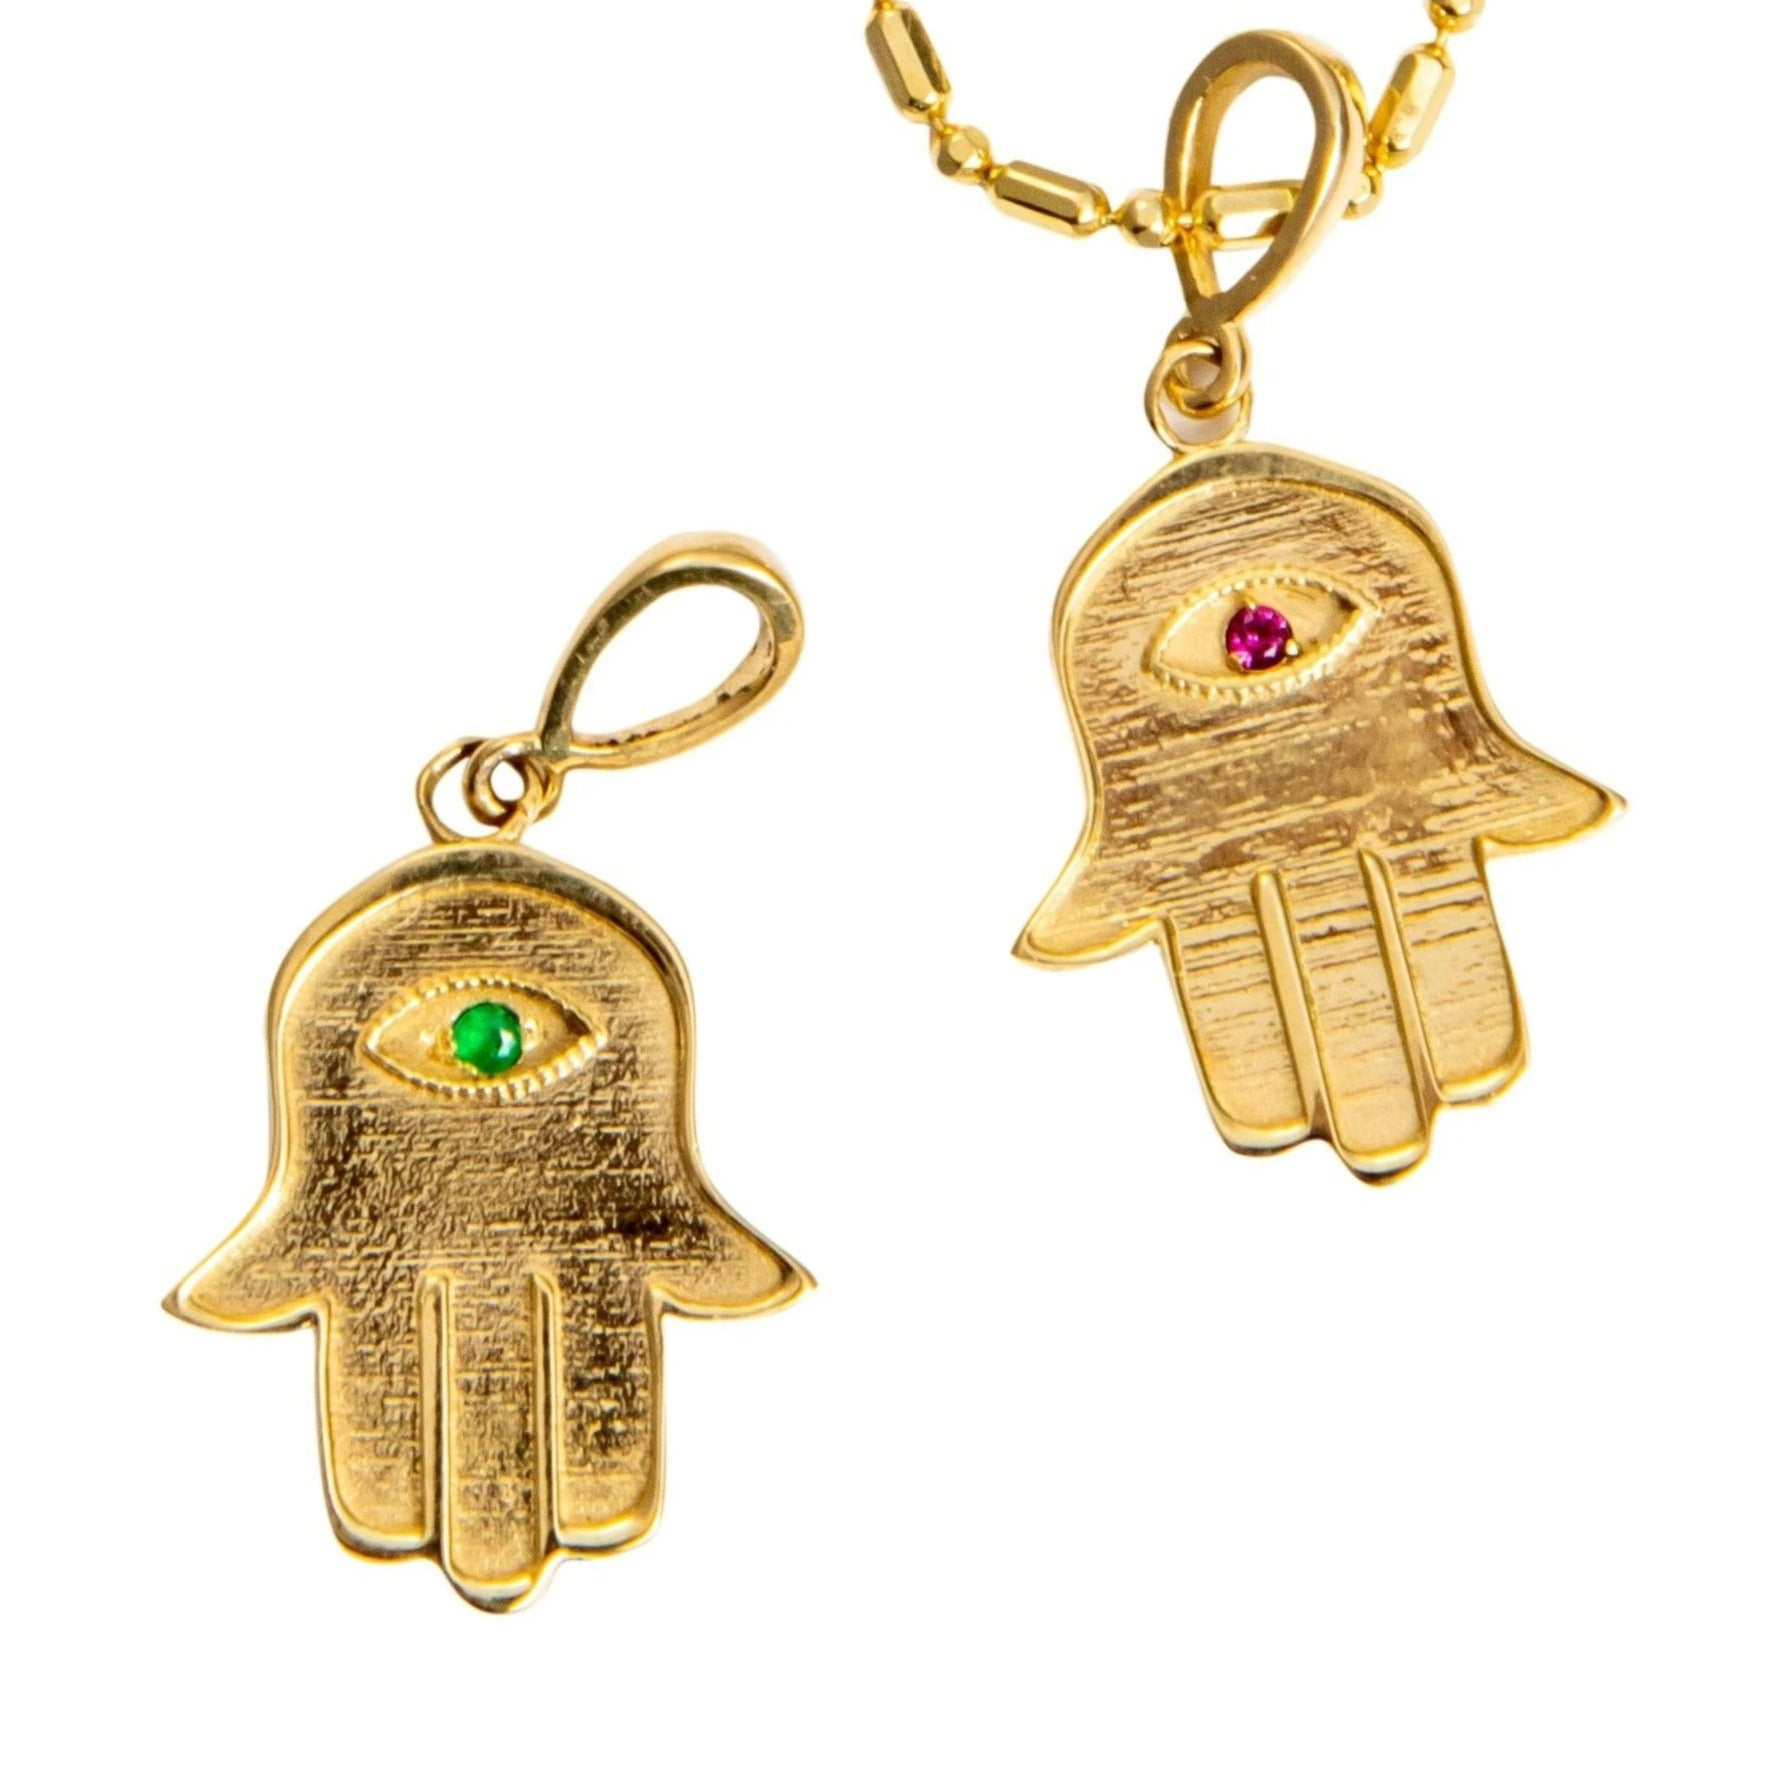 14k Yellow Gold Hamsa Necklace with Natural Stone - Iris 1956